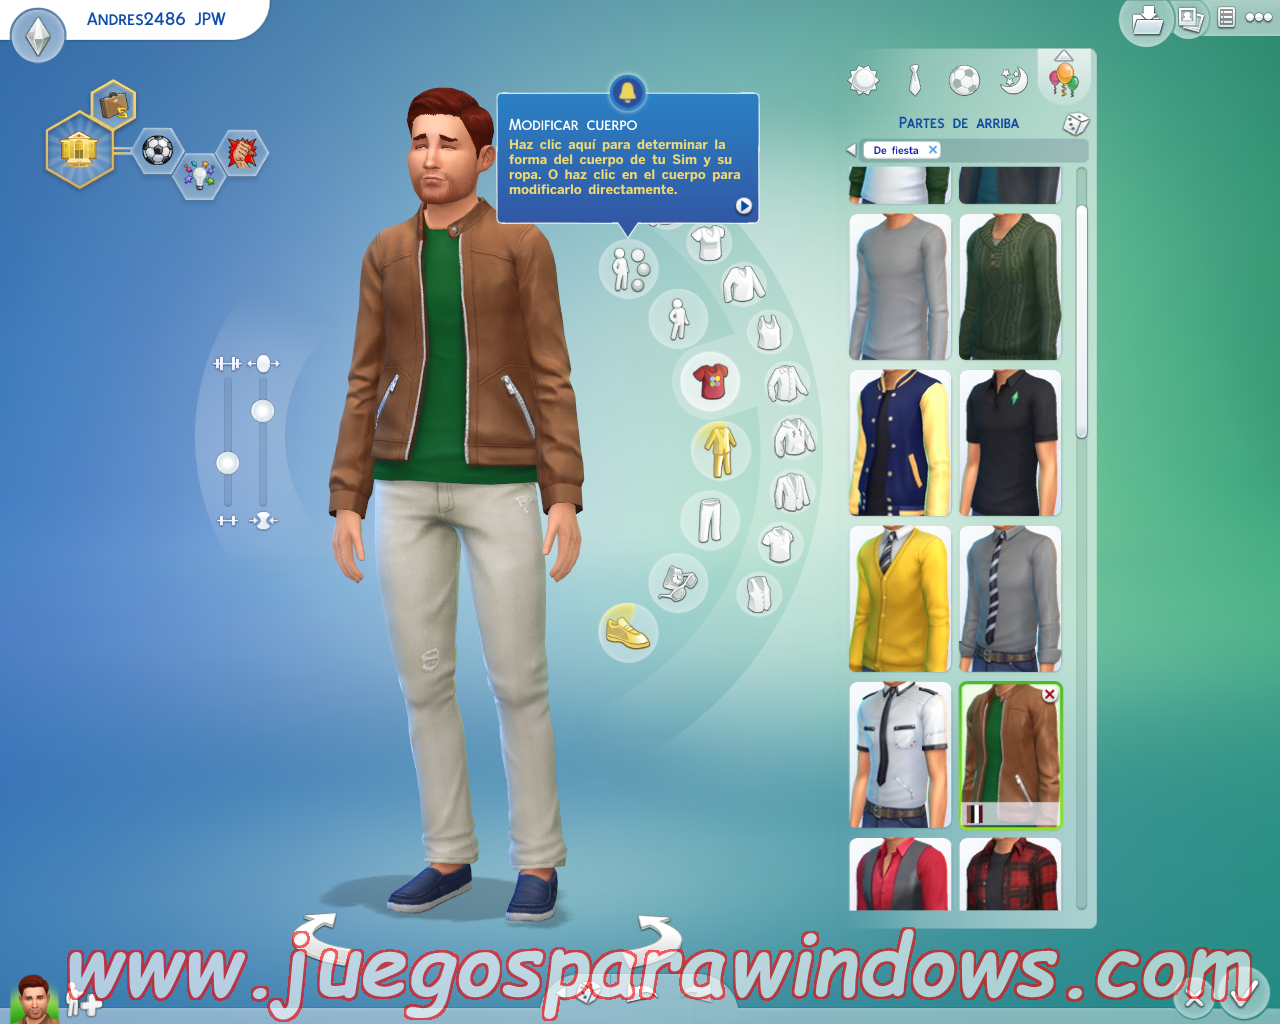 Los Sims 4 Digital Deluxe Edition ESPAÑOL PC Full + Update v1.4.83.1010 Incl DLC (RELOADED) 14